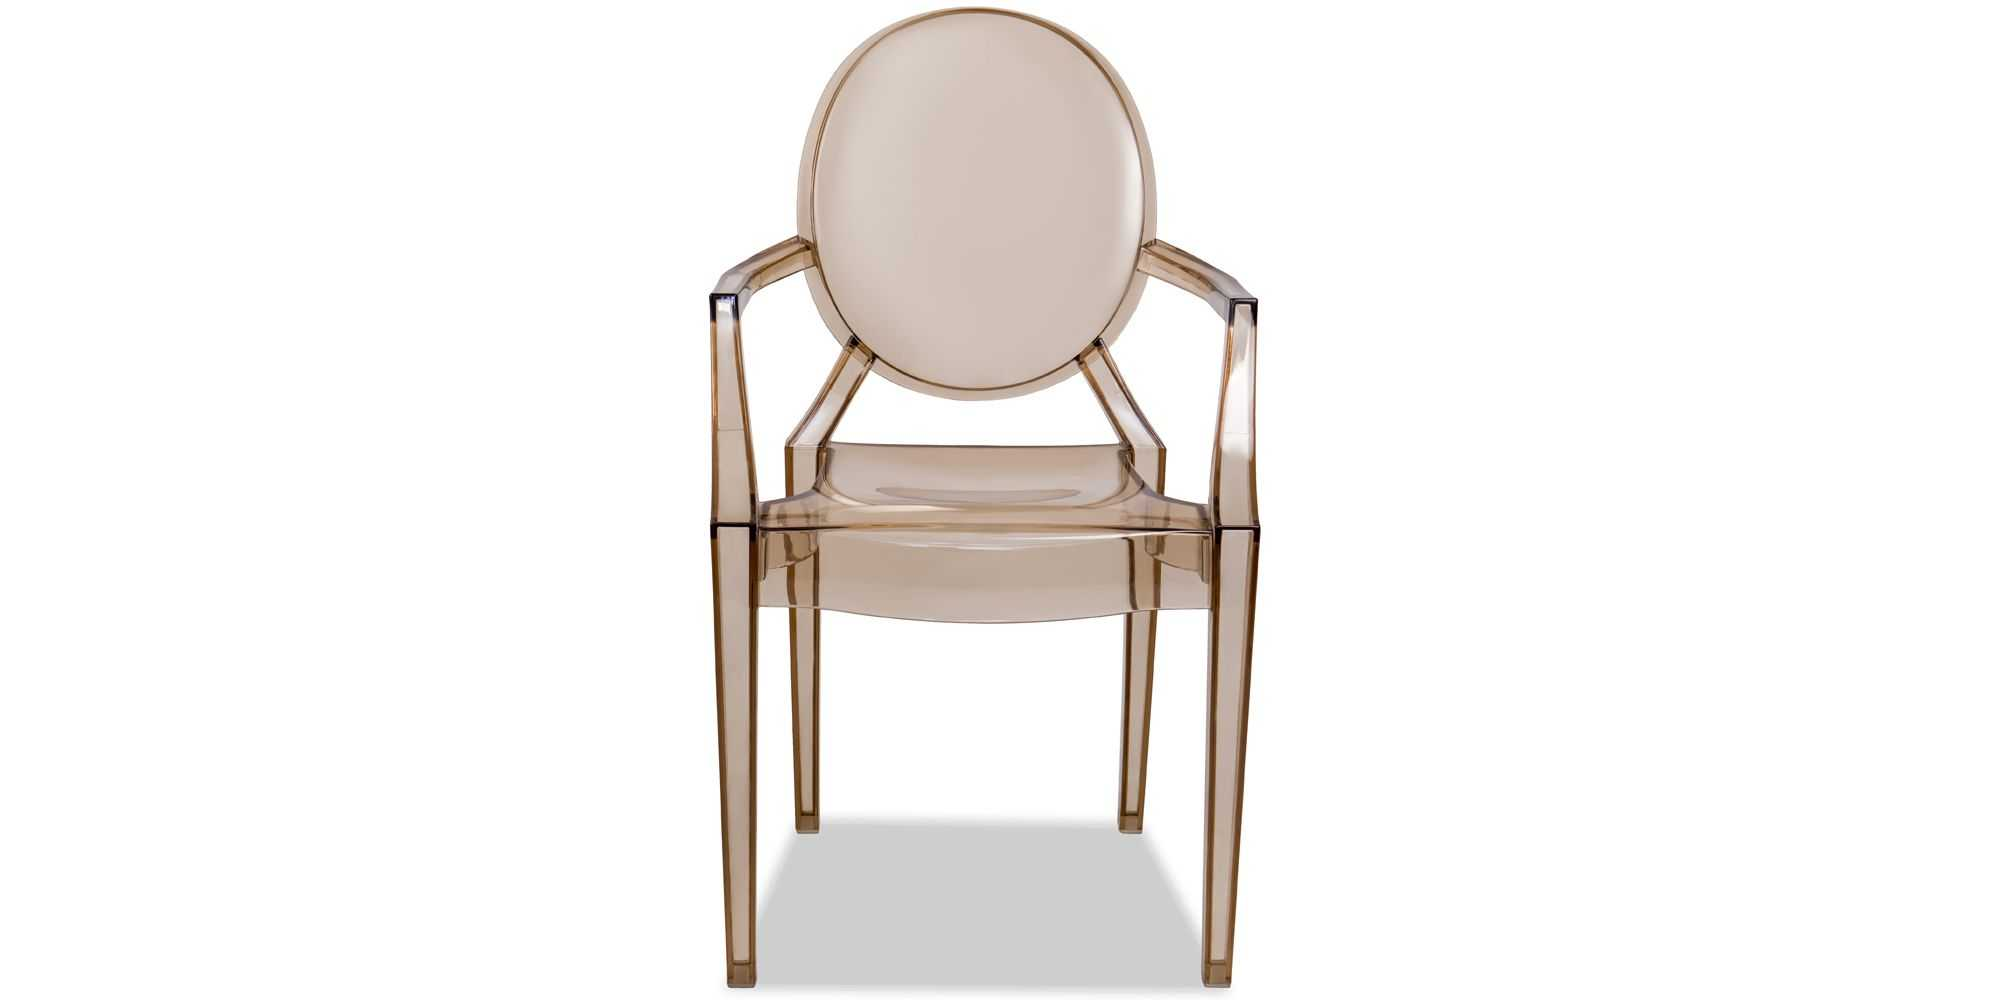 ghost chair replica hanging online chairs kartell louis brown fabelio oleh furnituretables and chairschairs